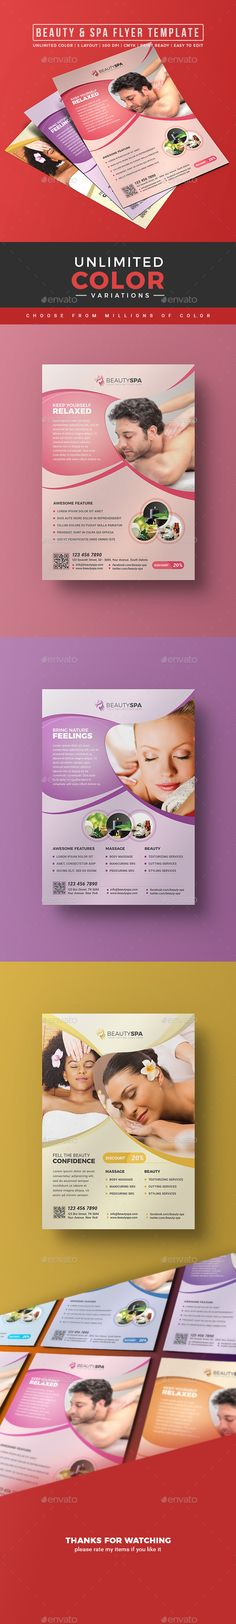 107 best Spa Flyer images on Pinterest Font logo, Fonts and - spa brochure